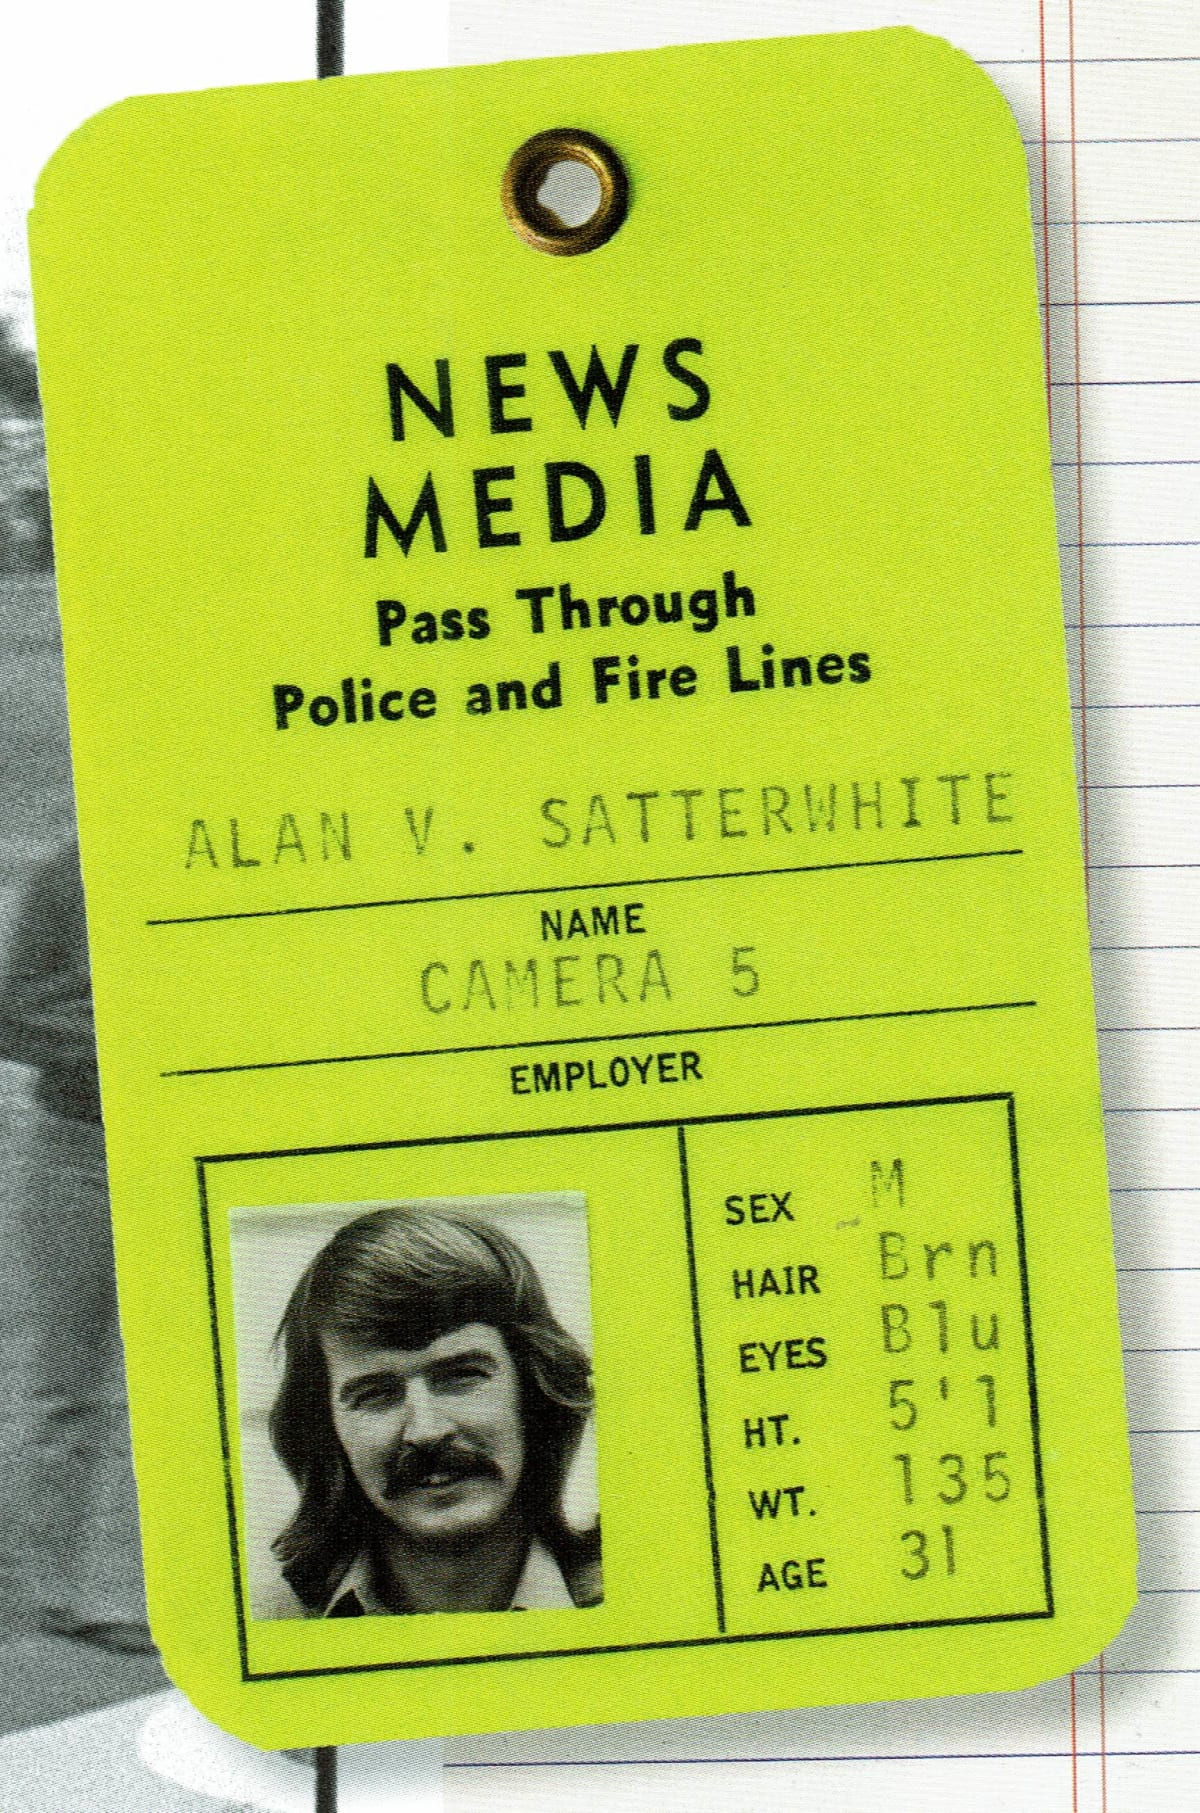 News Media pass for the author, Al Satterwhite.